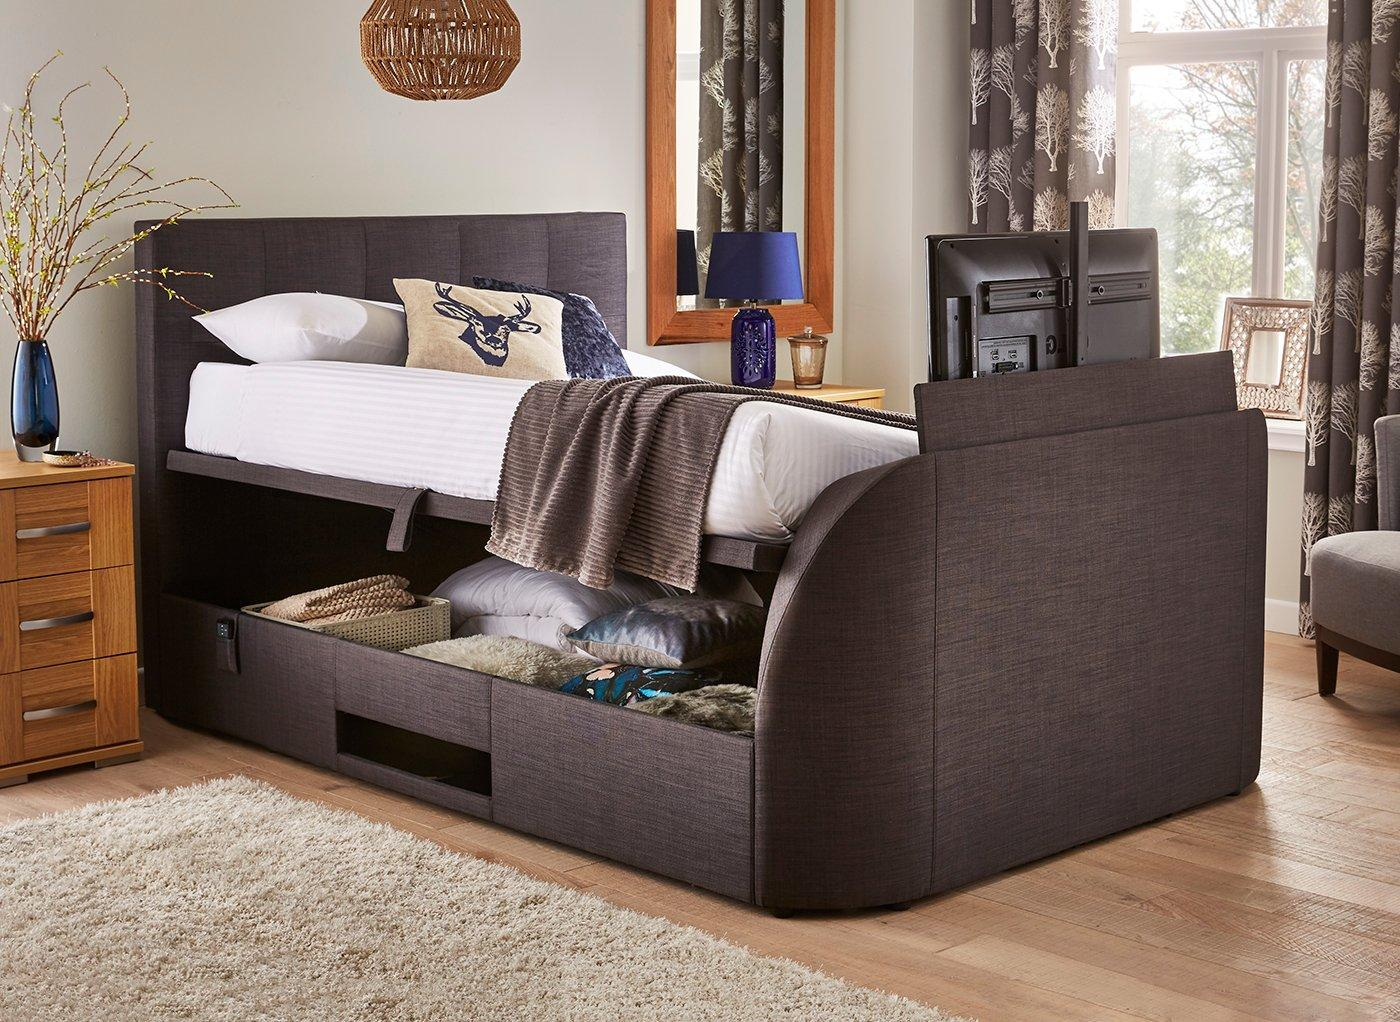 Tv In Bed : Mfp bonded leather tv bed mfp furniture